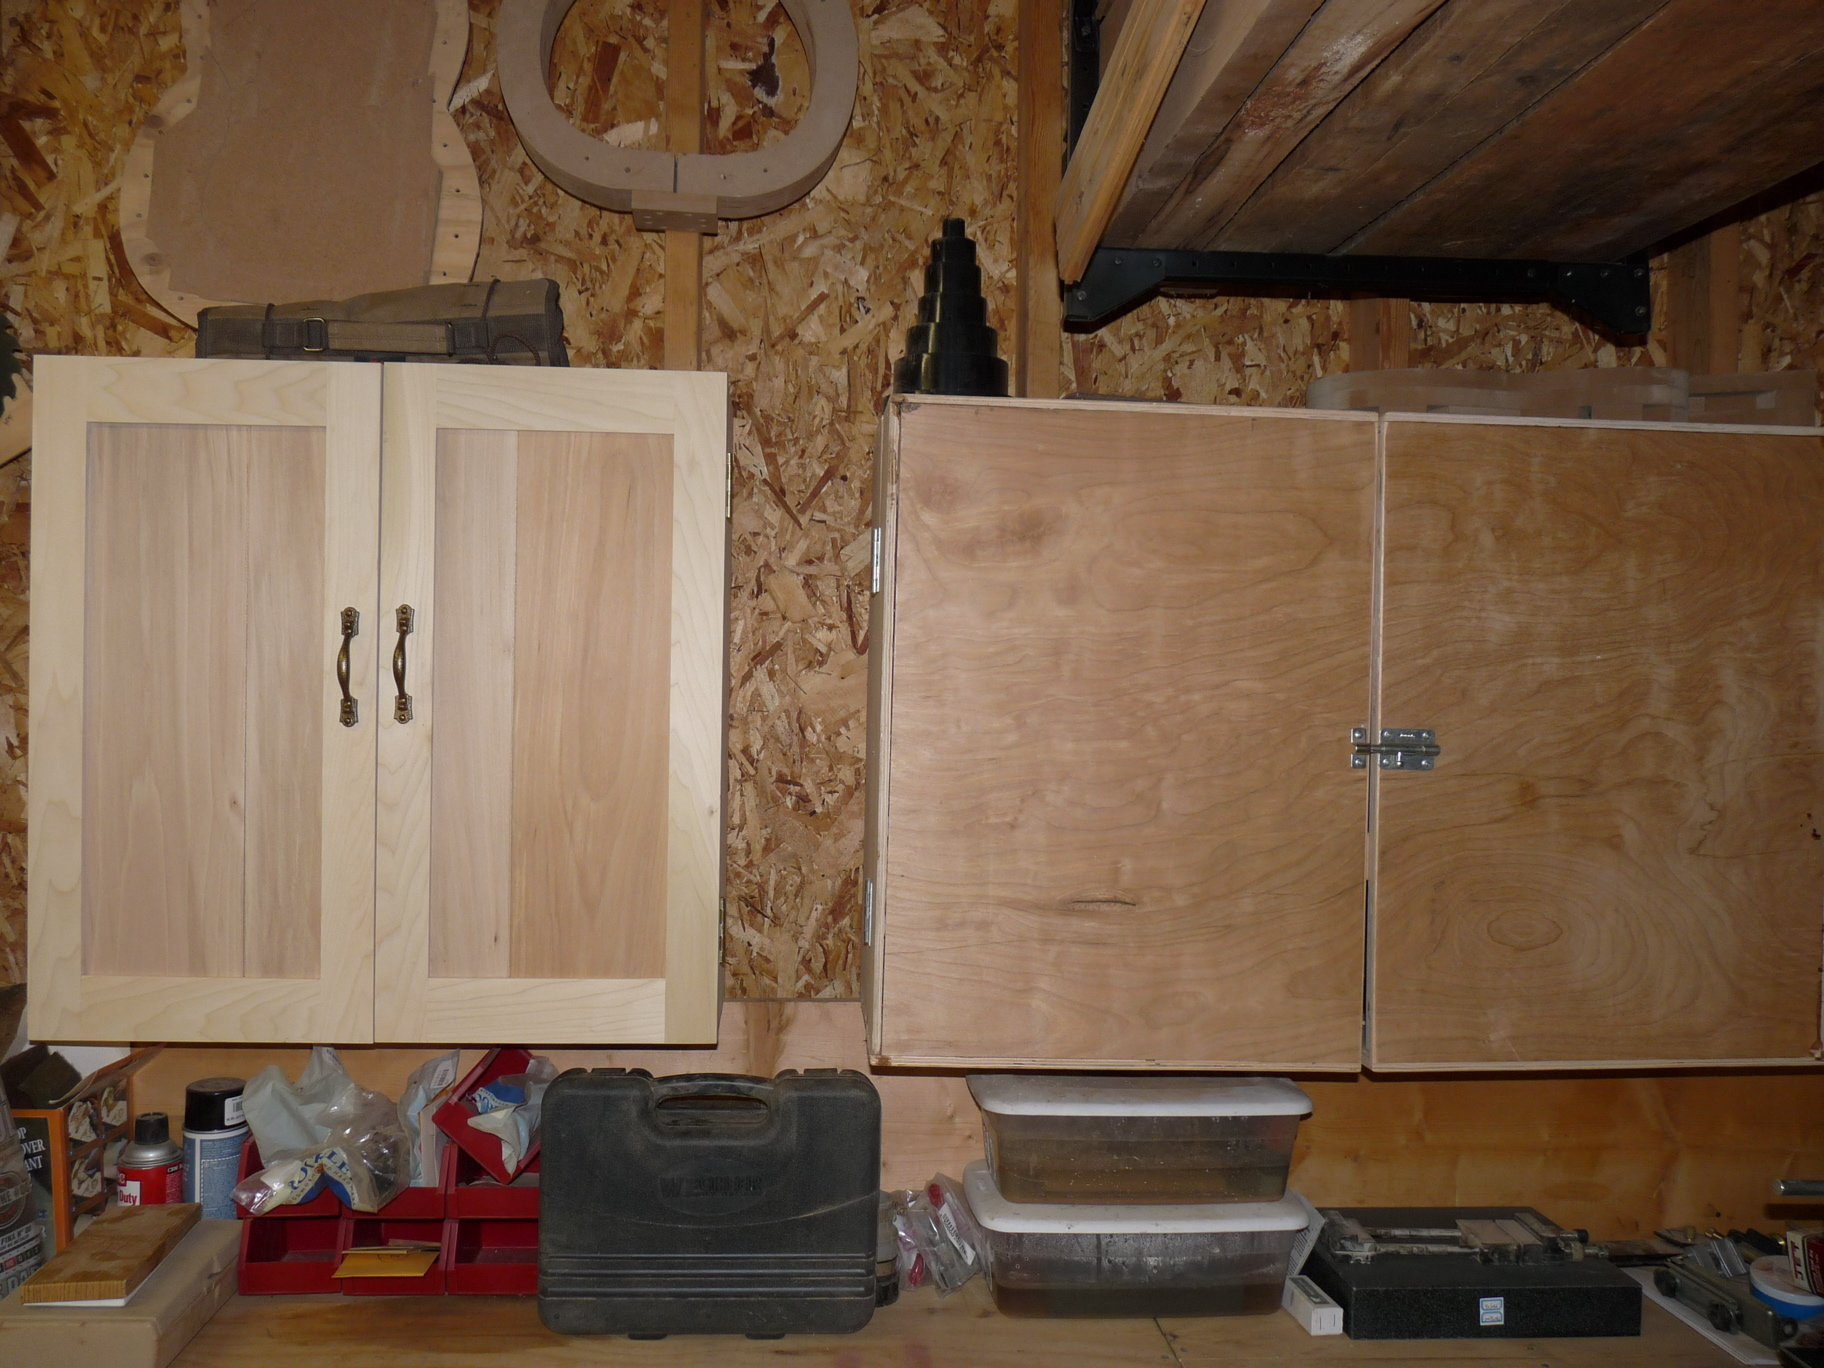 Diy Cabinet Plywood Plans Wooden Pdf Craft Woodworking